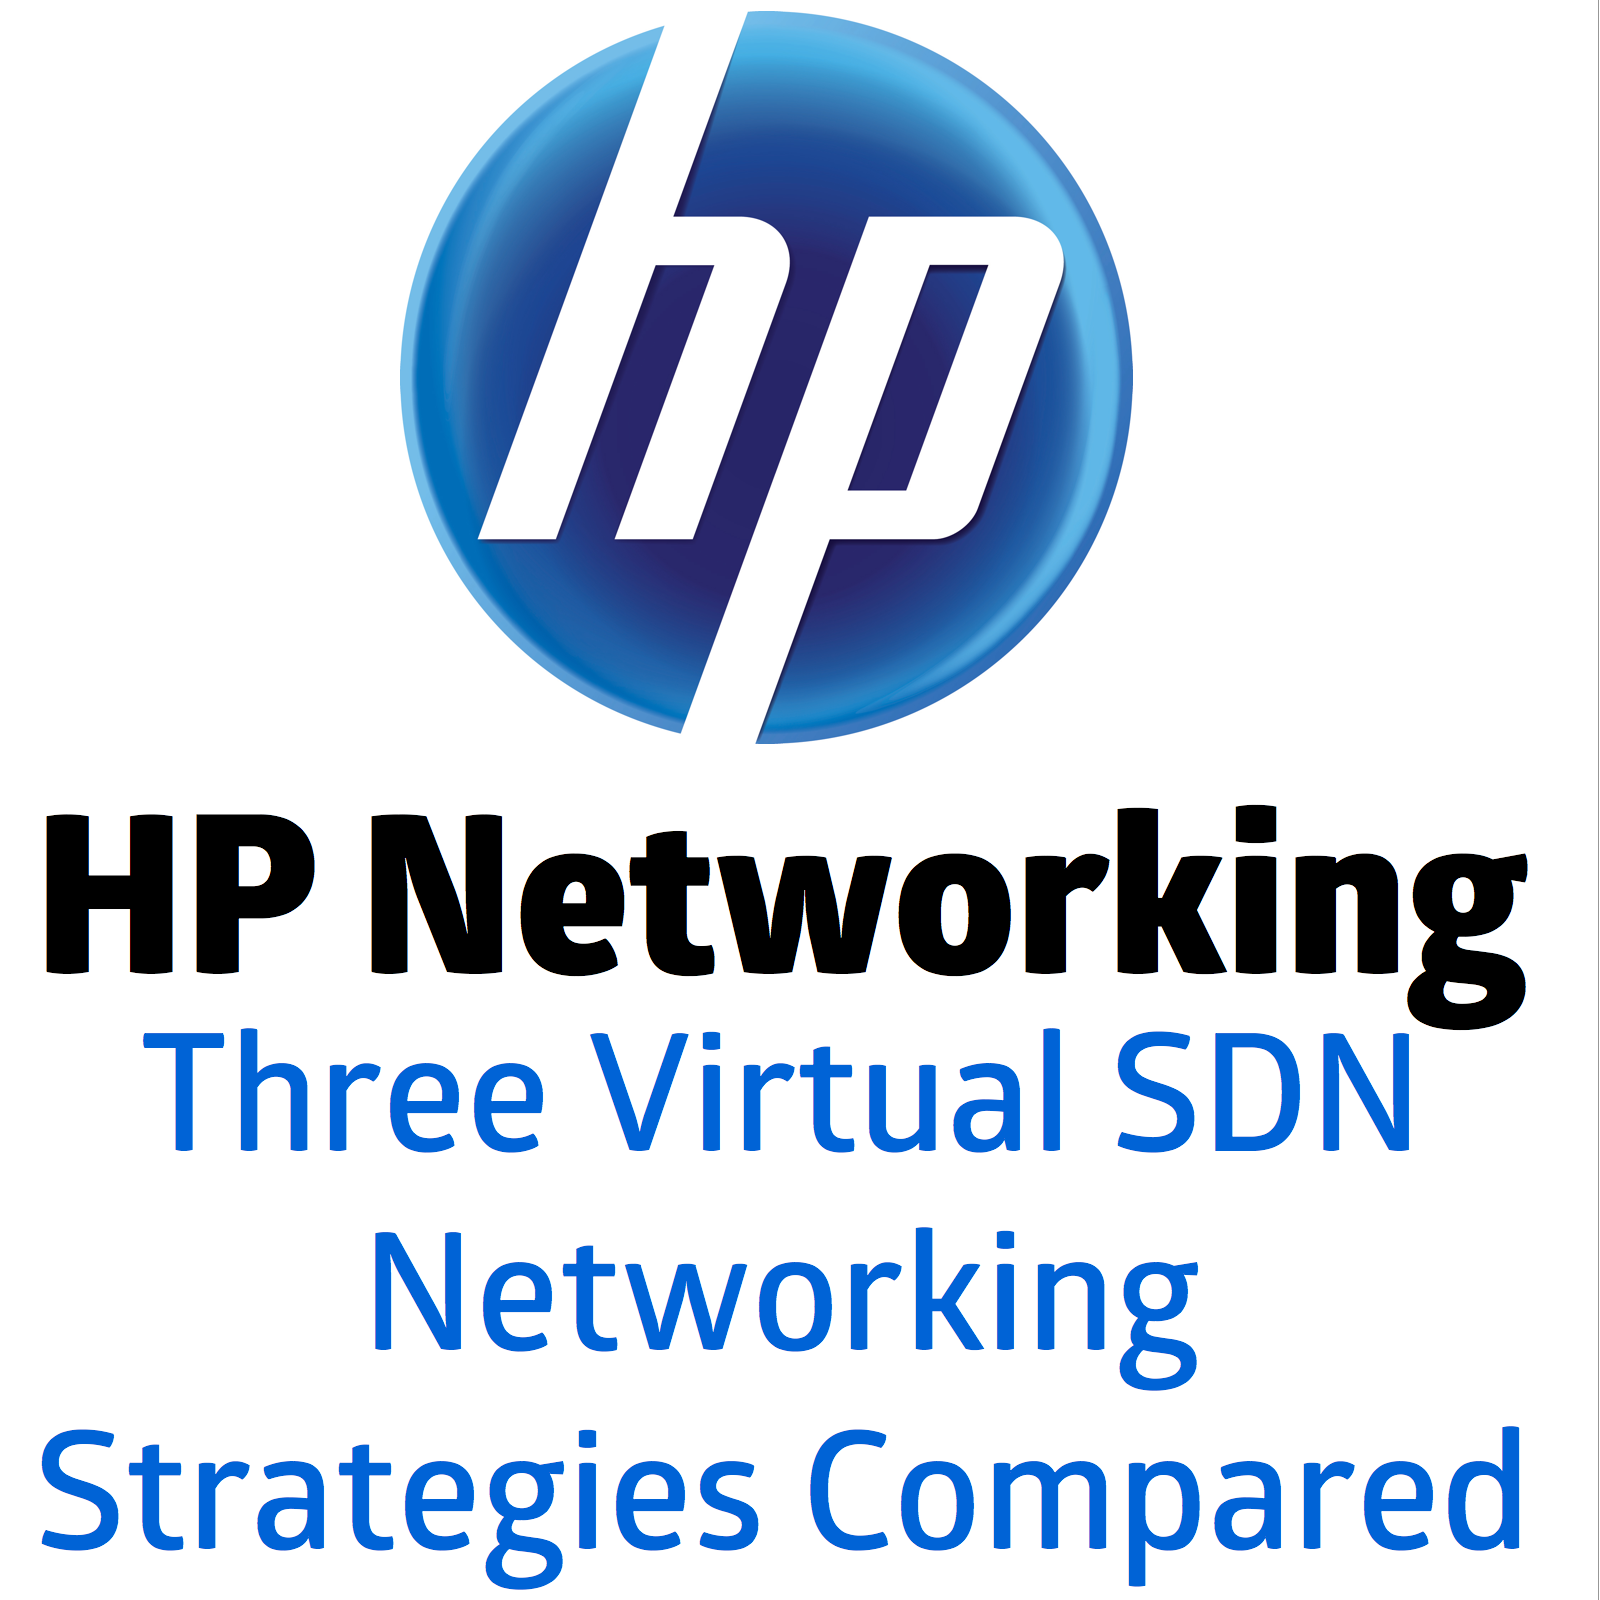 pq show hp networking virtual network strategies compared each solution hp virtual networking